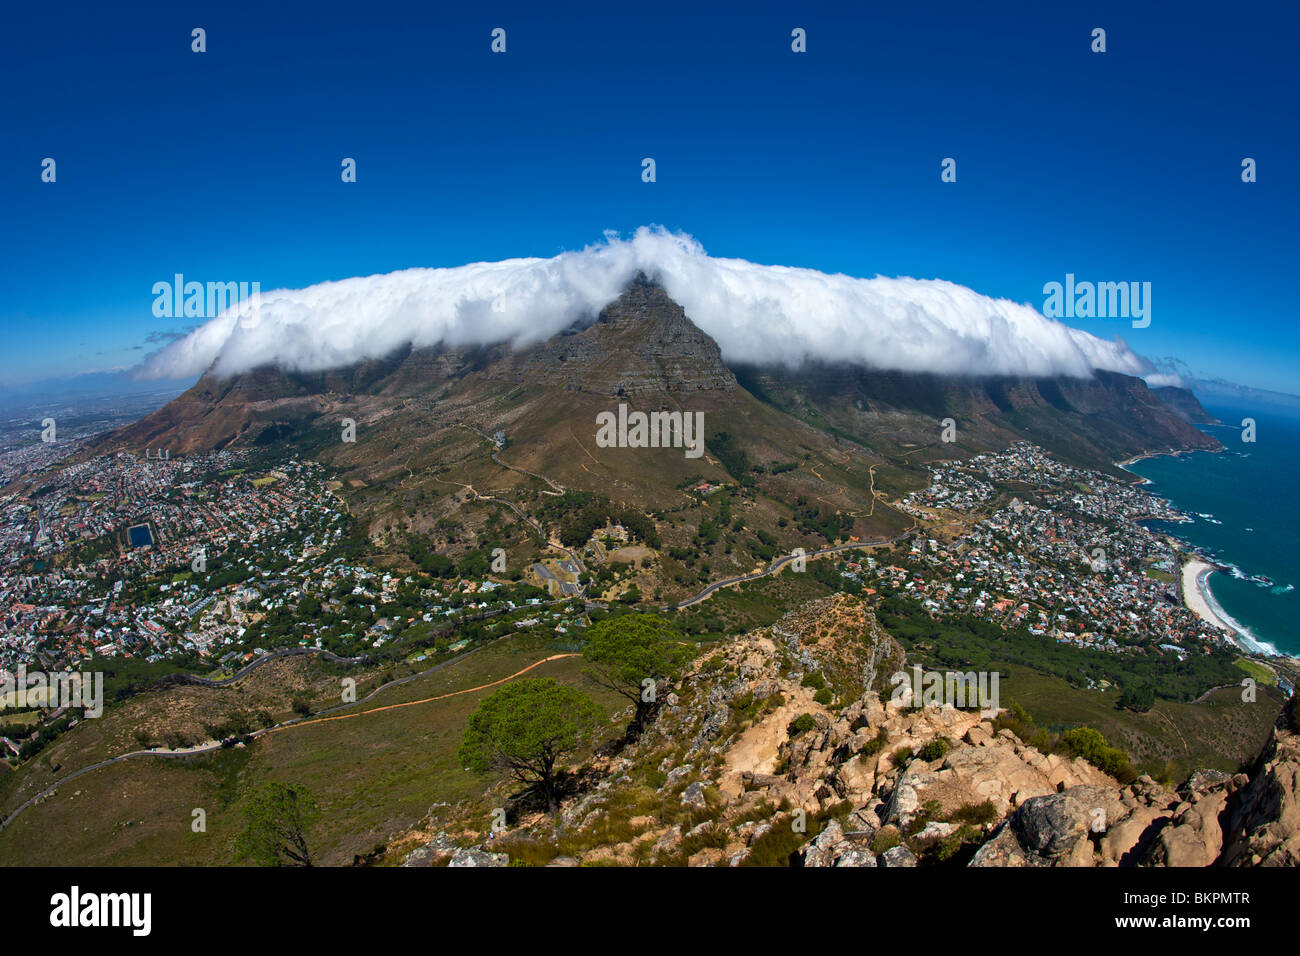 The 'table cloth' cloud effect over Table Mountain in Cape Town, South Africa. - Stock Image